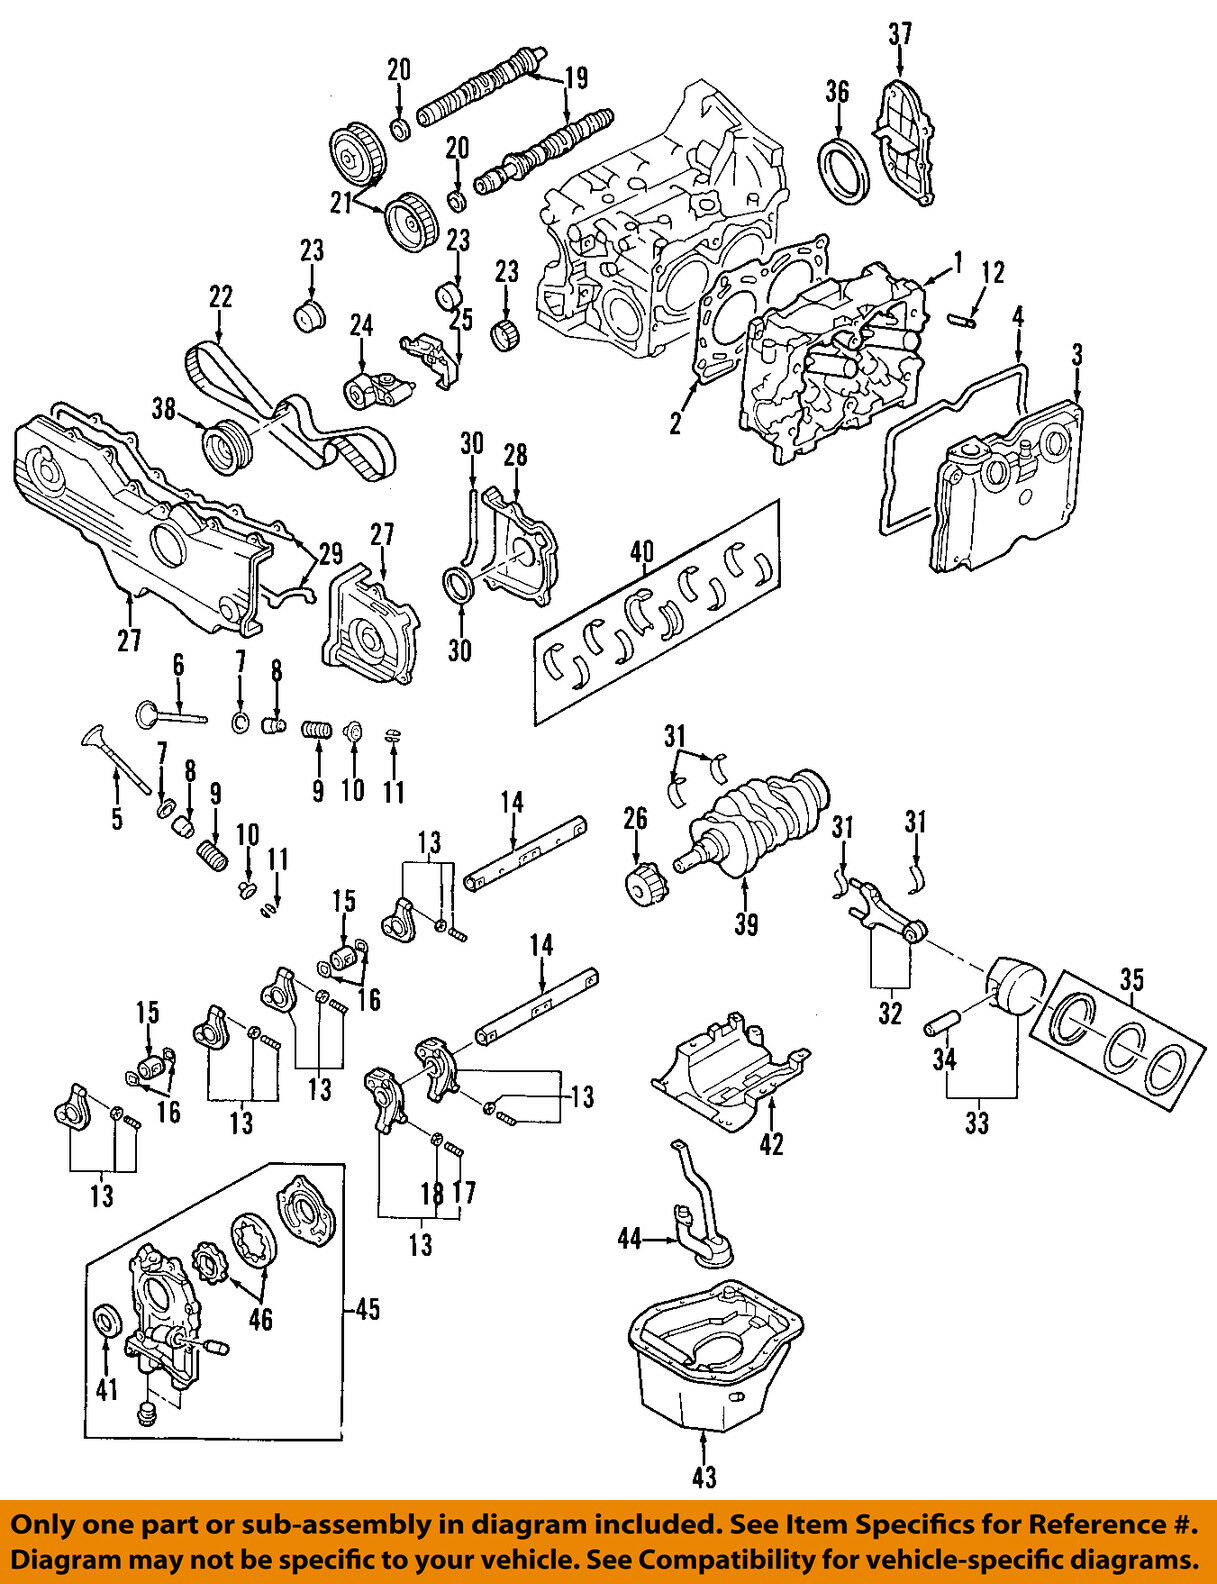 Subaru Oem 04 11 Impreza Engine Timing Camshaft Cam Gear 13017aa042 Diagram 1 Of 1only Available